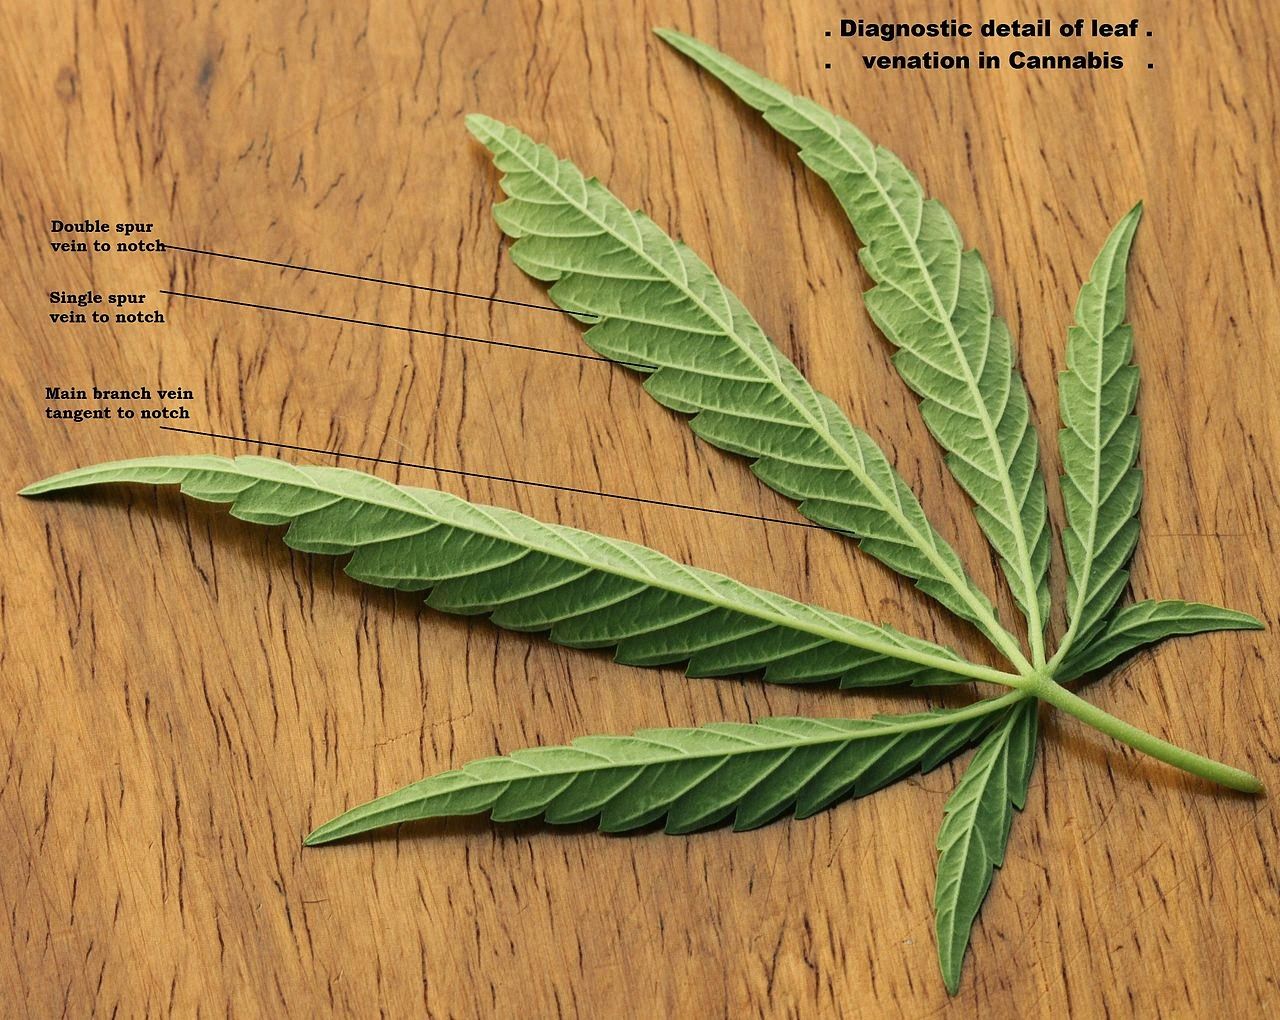 Cannabis leaf, Cannabis Sativa